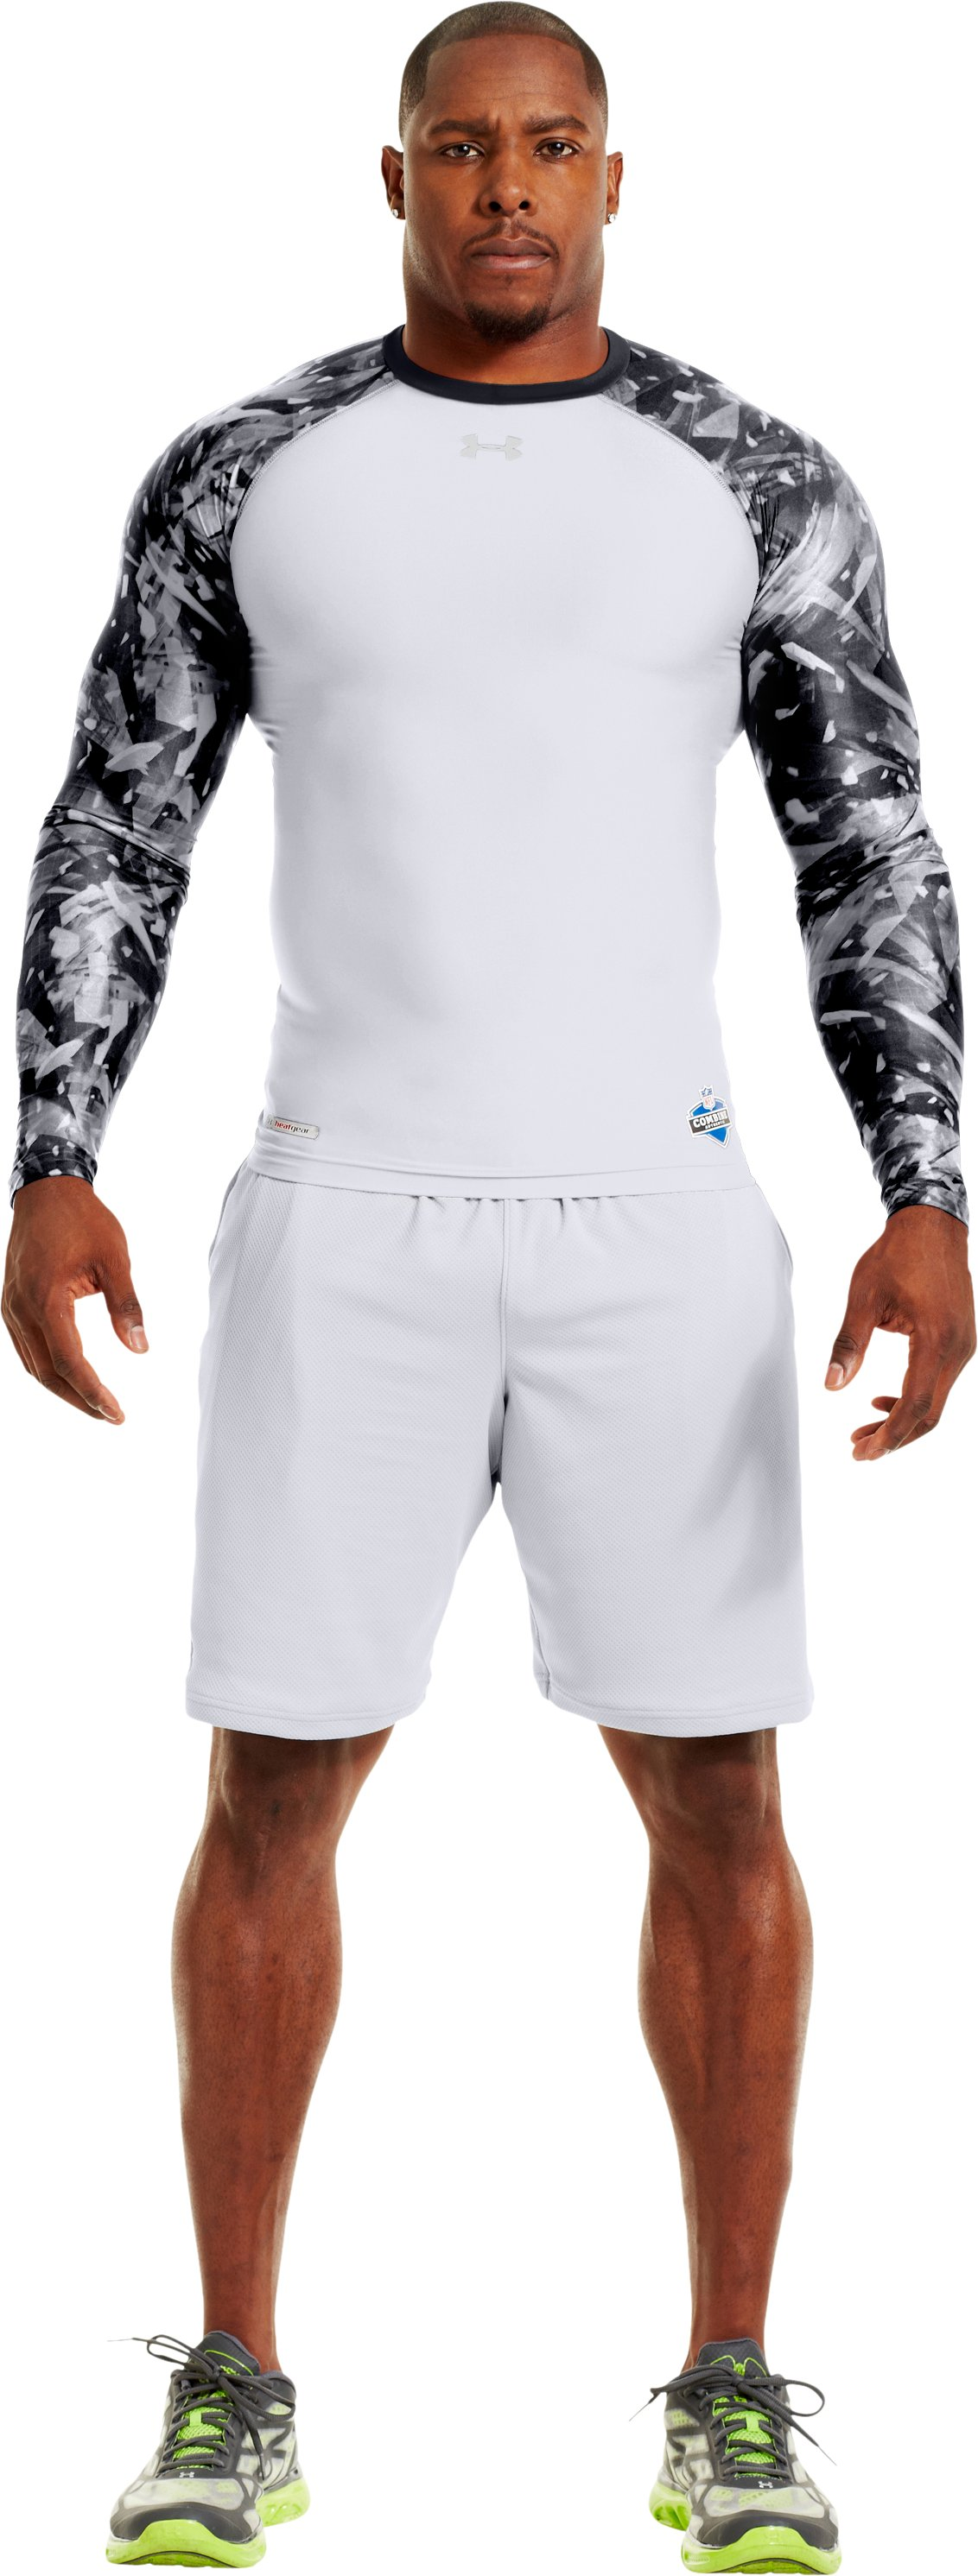 Men's NFL Combine Authentic Compression Long Sleeve, White